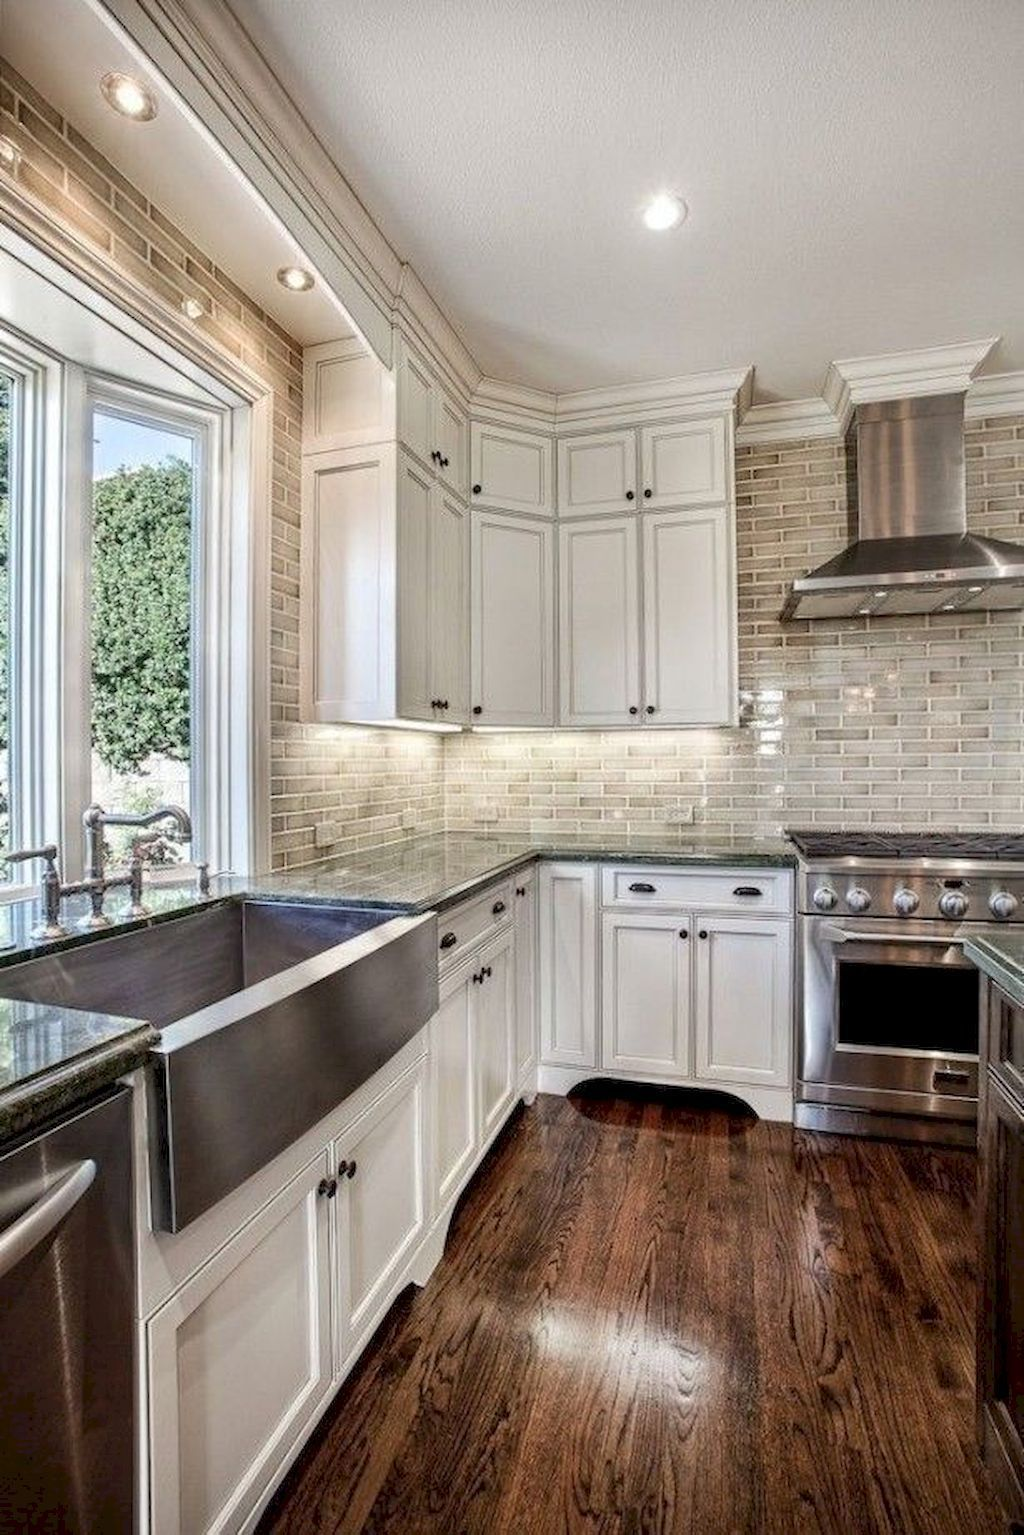 45+ most popular kitchen design ideas on 2018 & how to remodeling